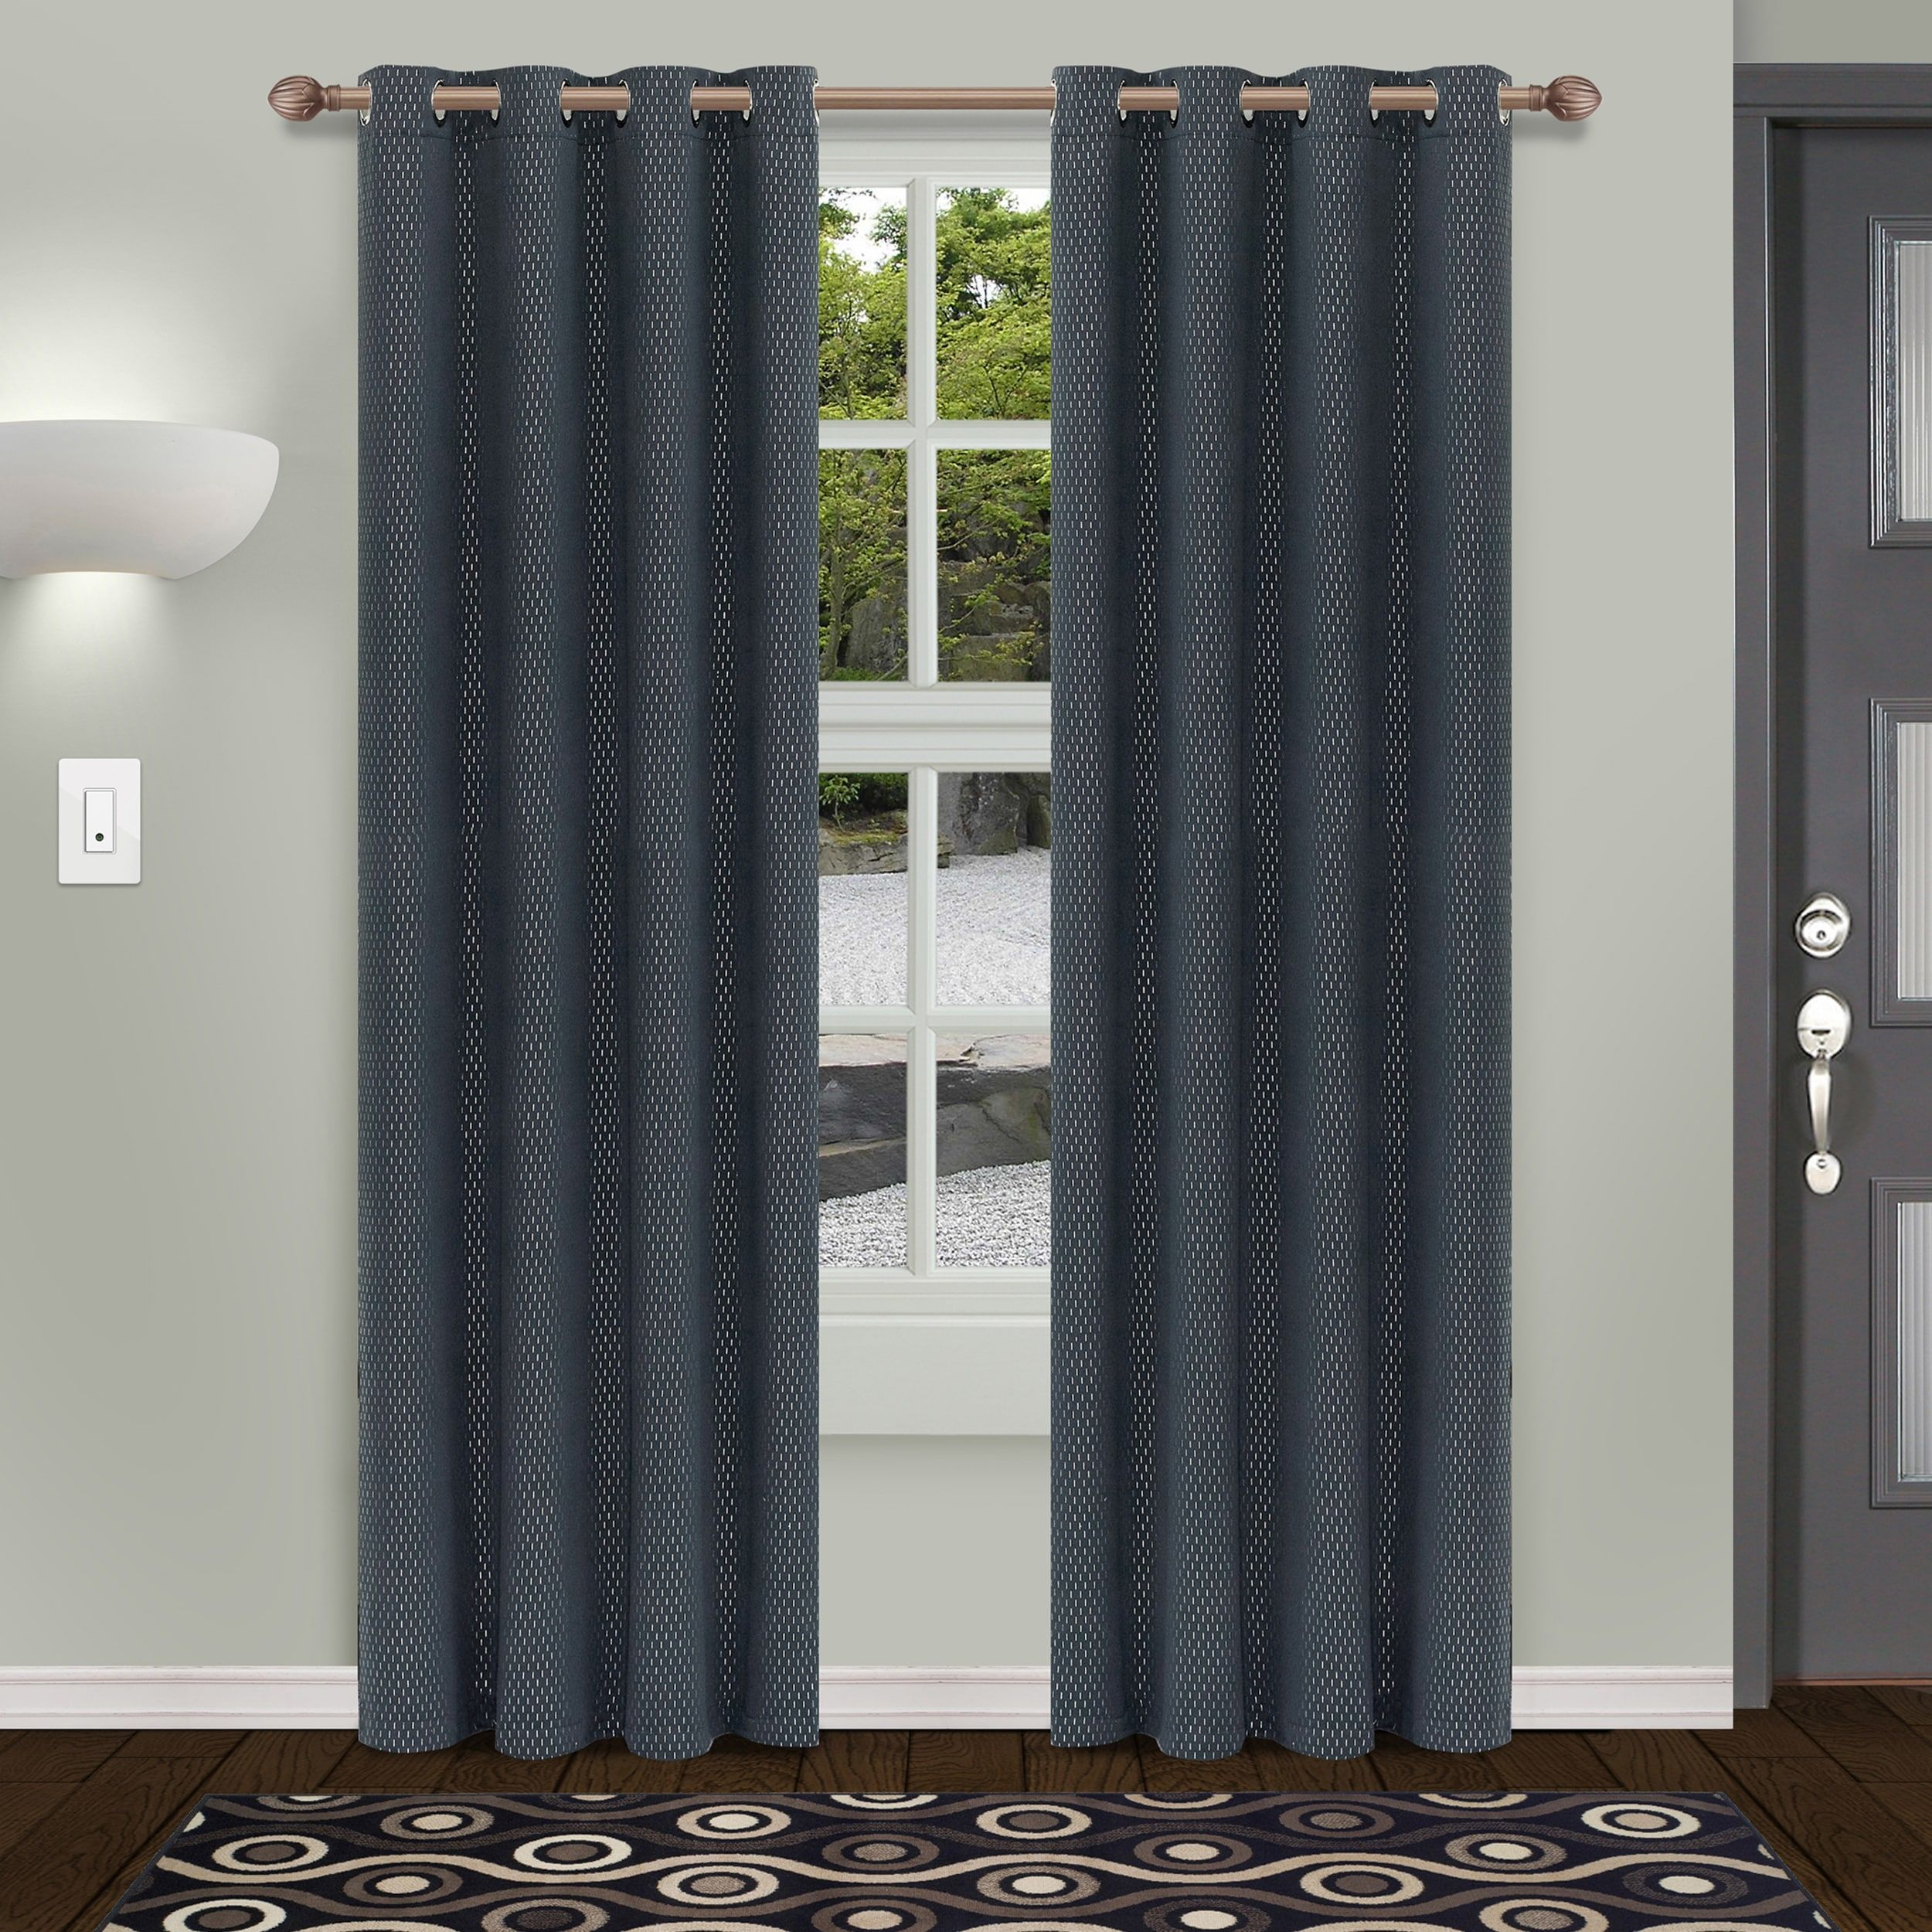 Superior Shimmer Insulated Thermal Blackout Grommet Curtain Pertaining To Insulated Grommet Blackout Curtain Panel Pairs (View 19 of 20)